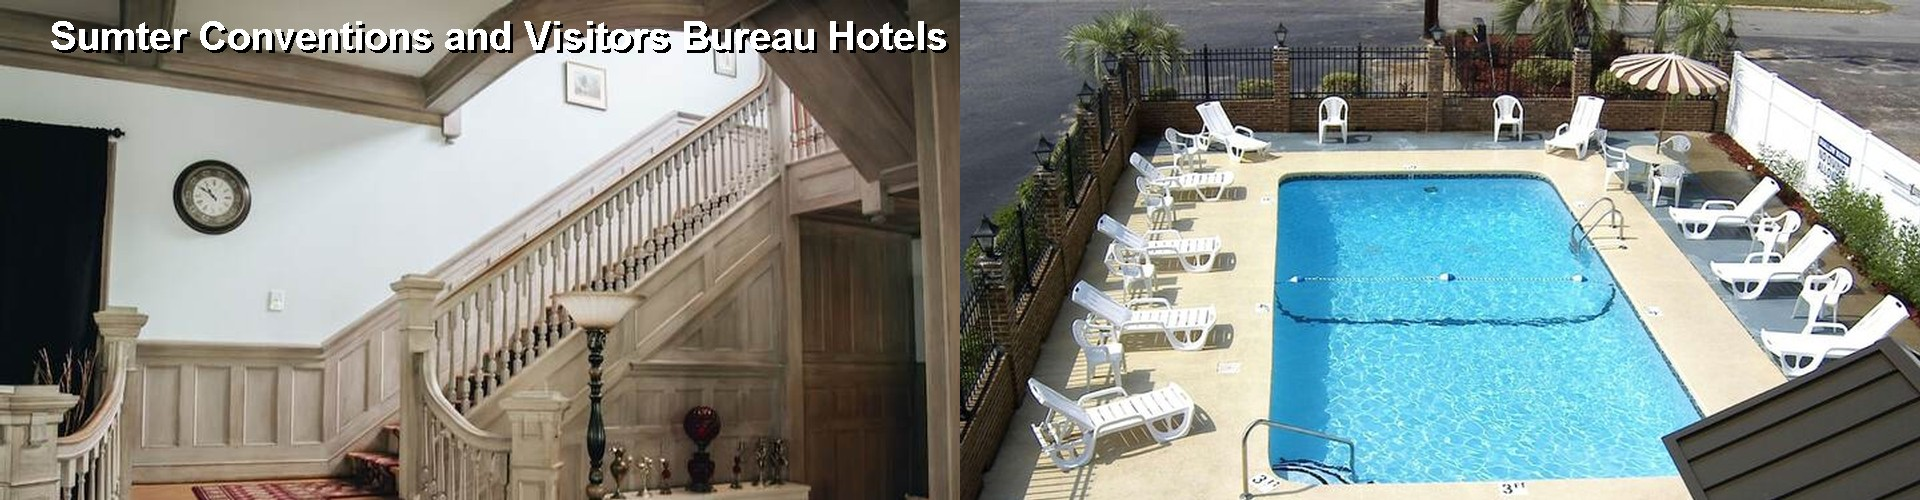 5 Best Hotels near Sumter Conventions and Visitors Bureau